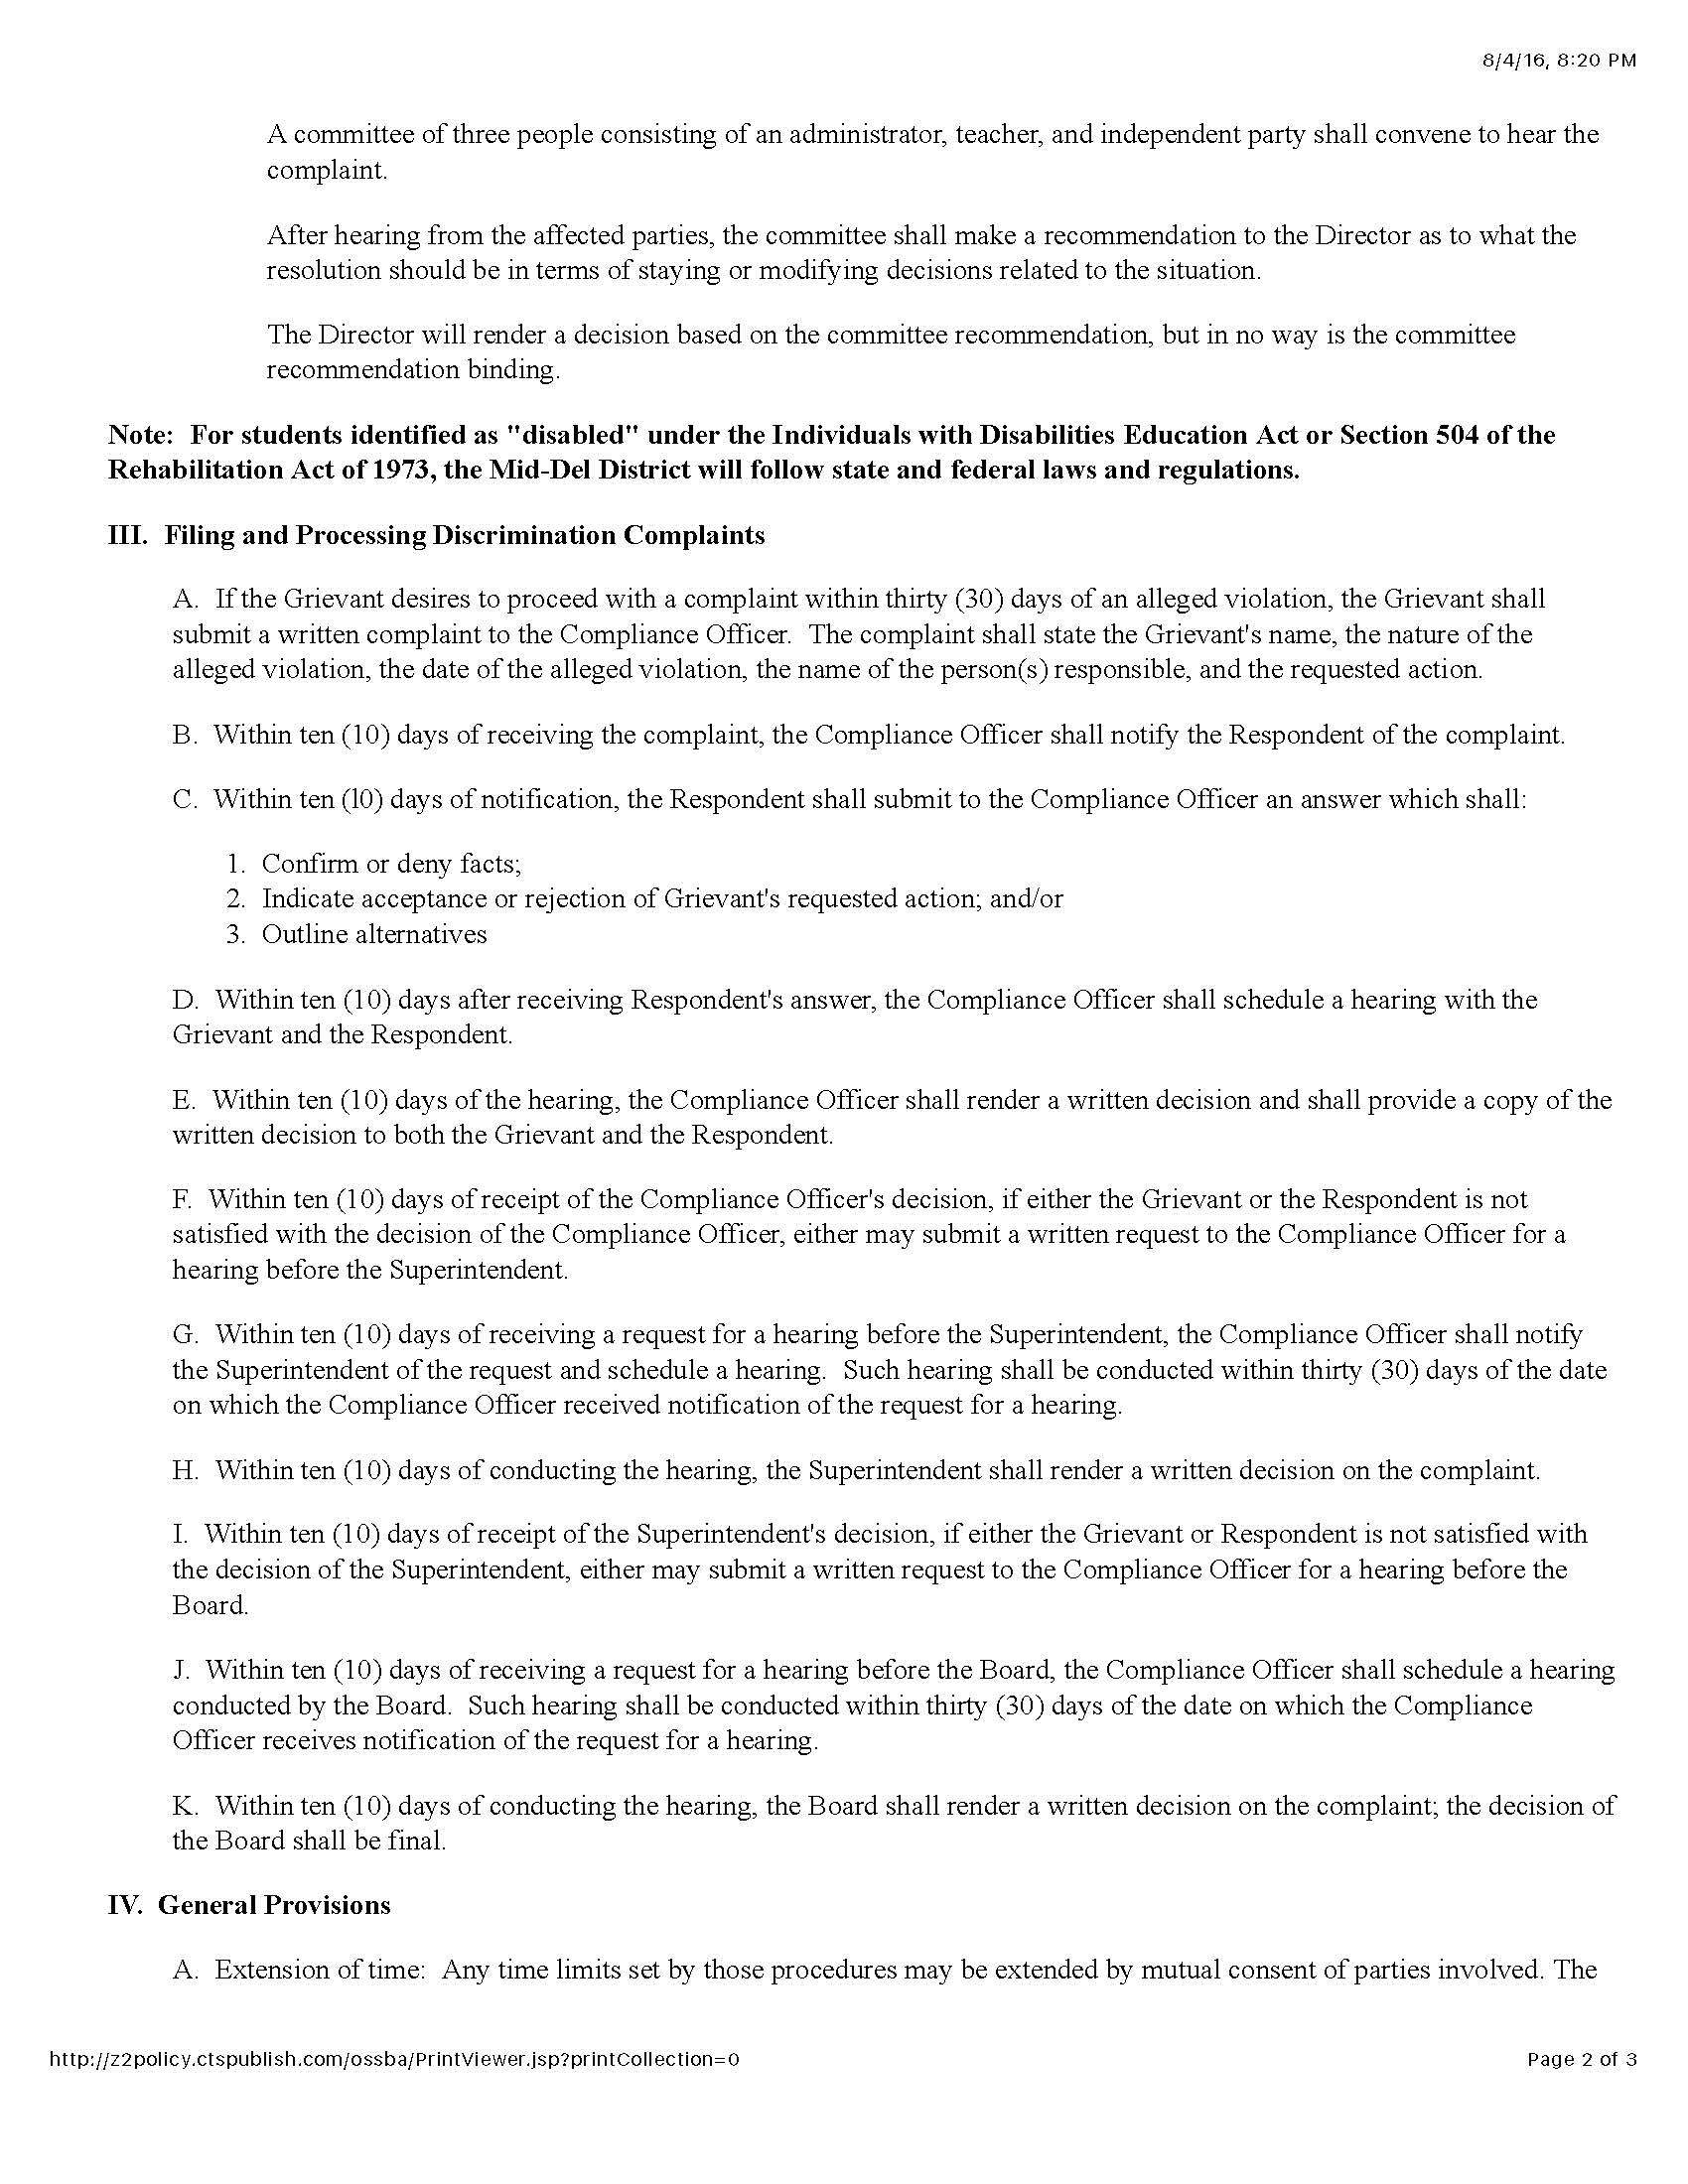 Policy C-22 Grievance and Complaint ProceduresPage 2_Page_2